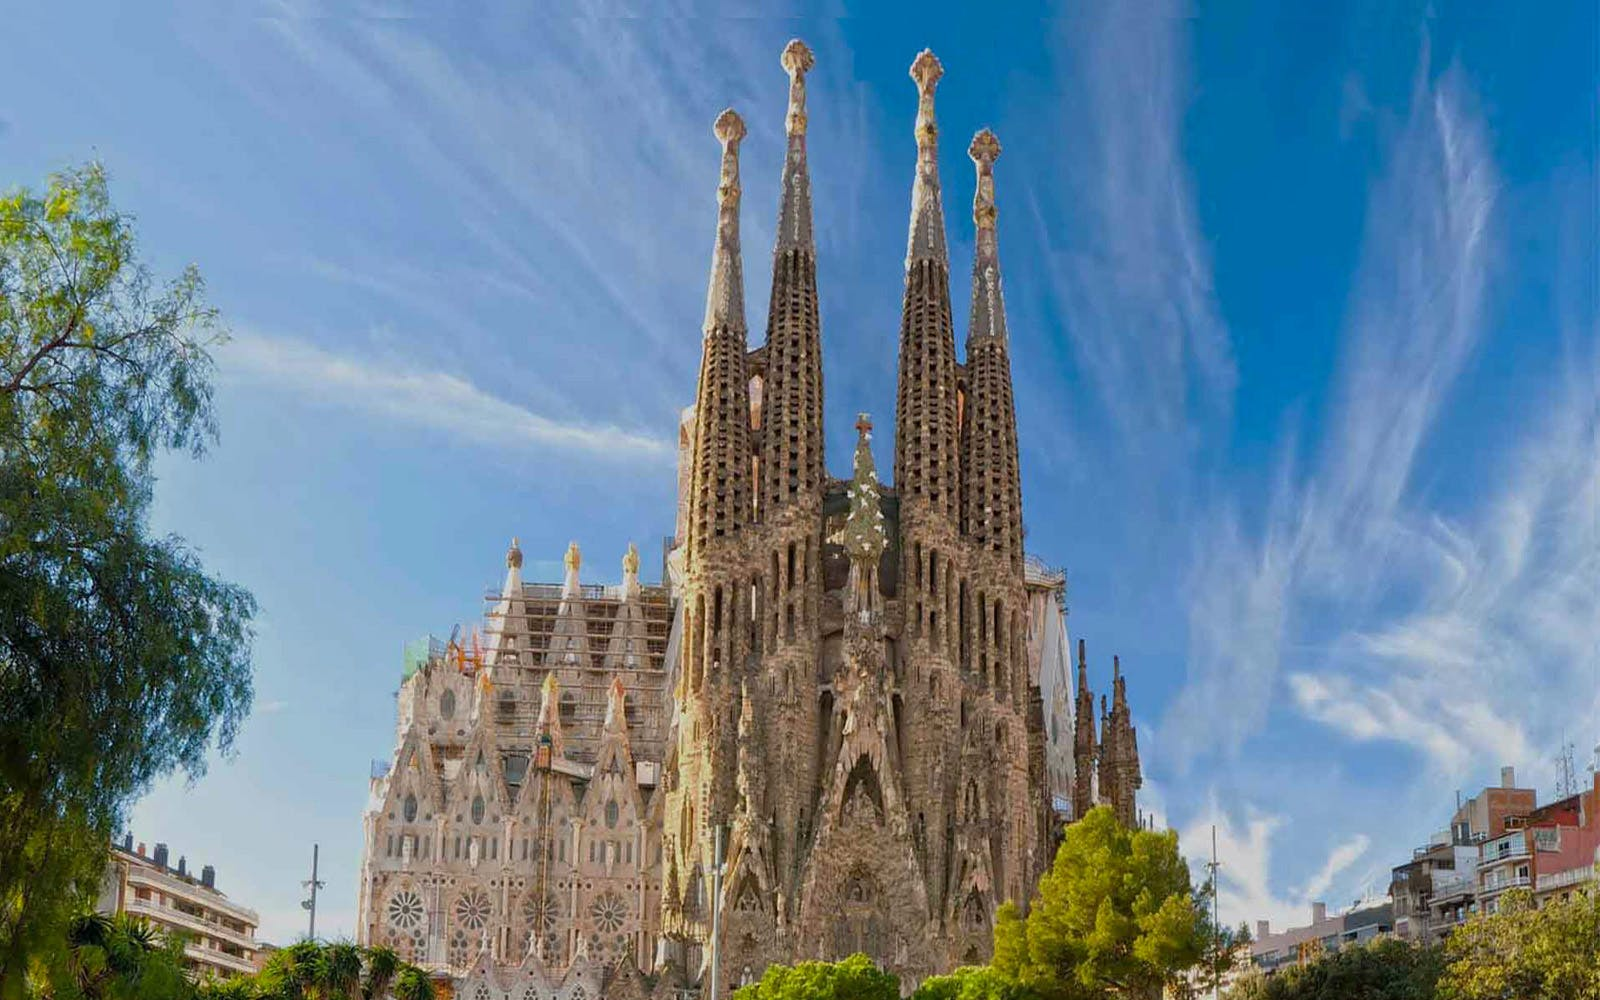 Skip The Line: Guided Tour of Sagrada Familia with Tower Access